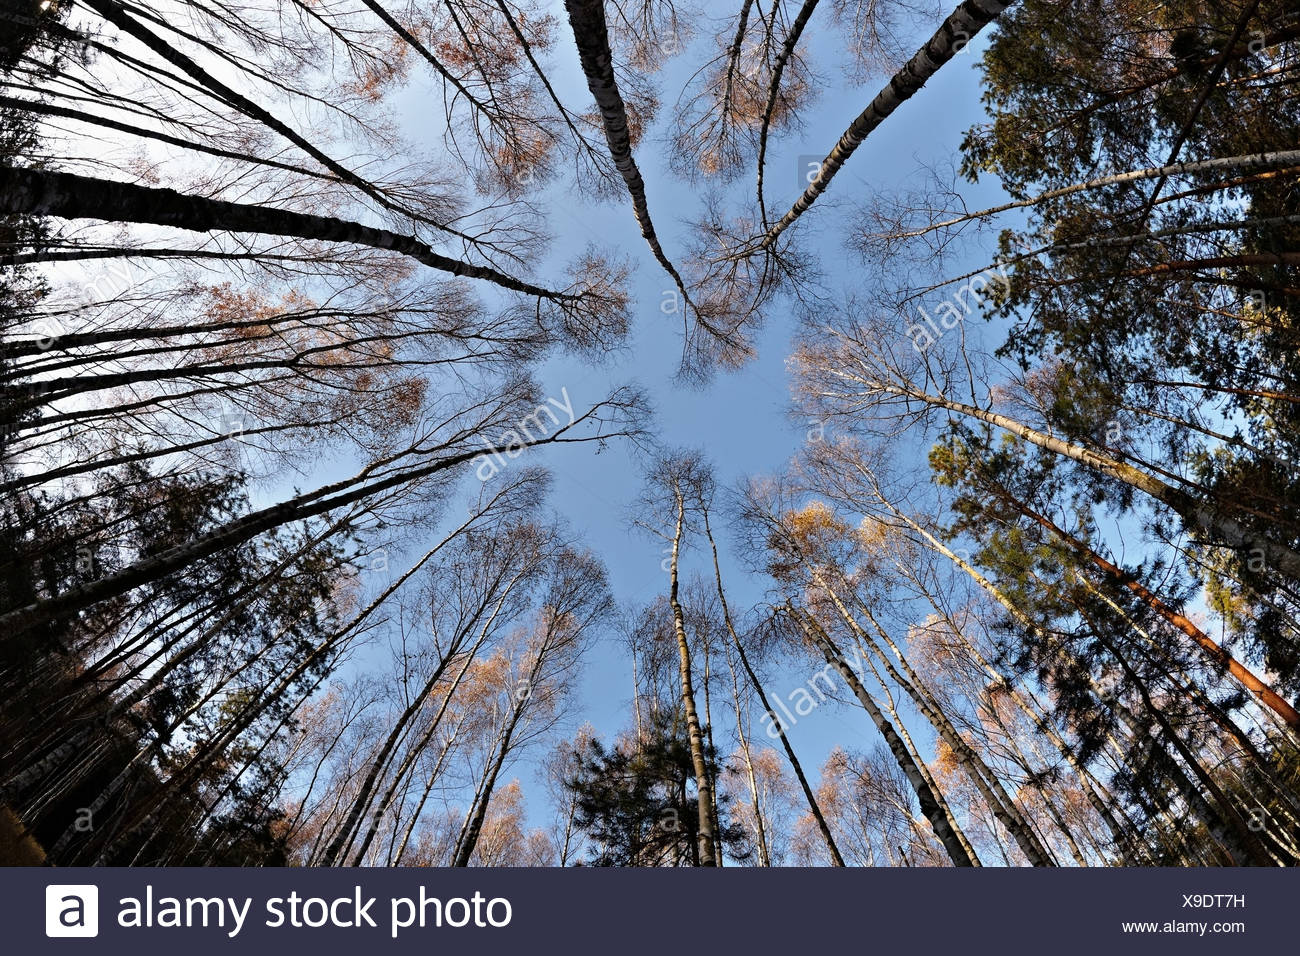 Fisheye view of birch and pine trees in forest - Stock Image